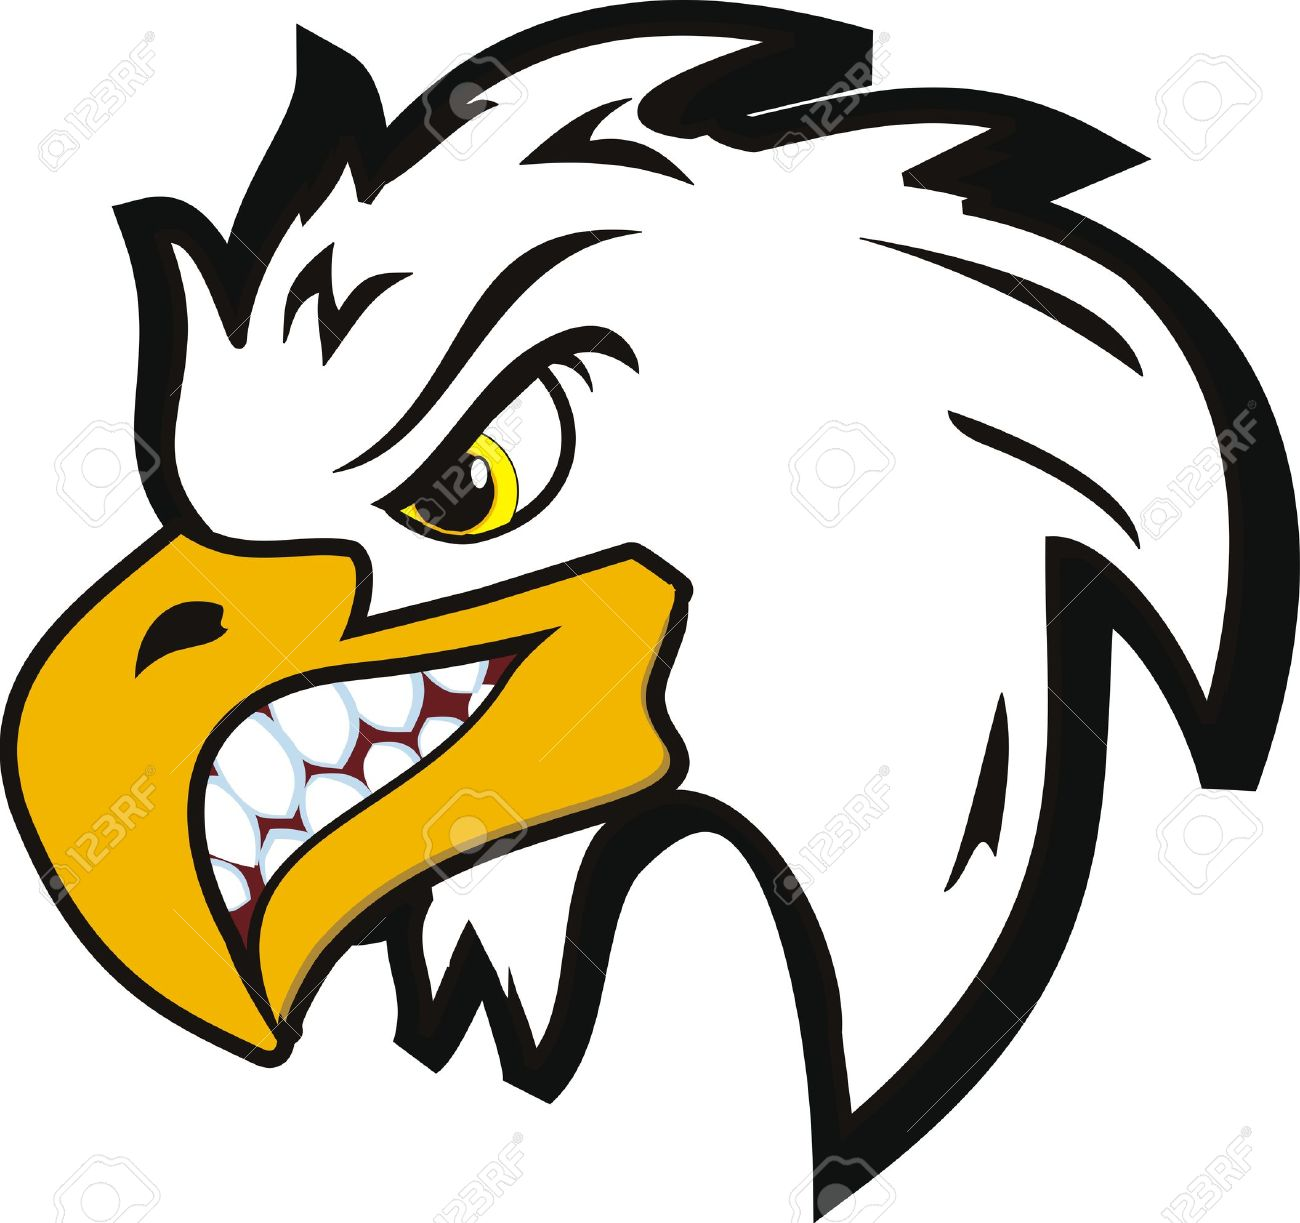 Angry Eagle Clipart.